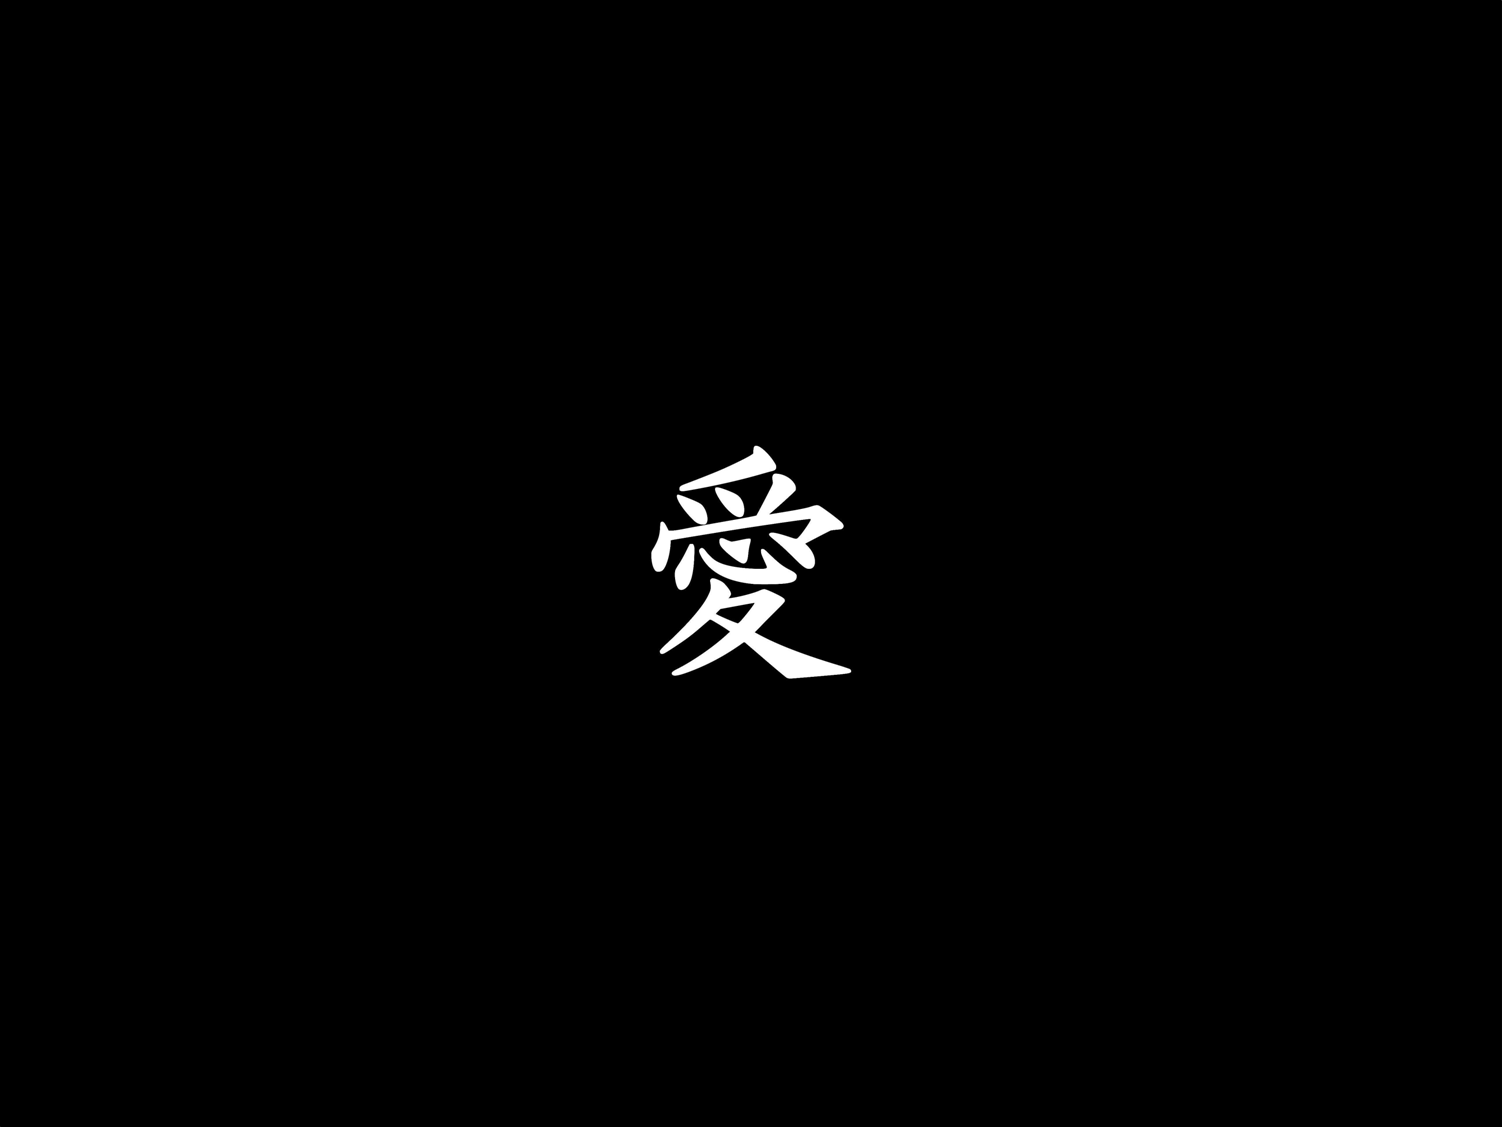 Kanji Wallpaper - WallpaperSafari